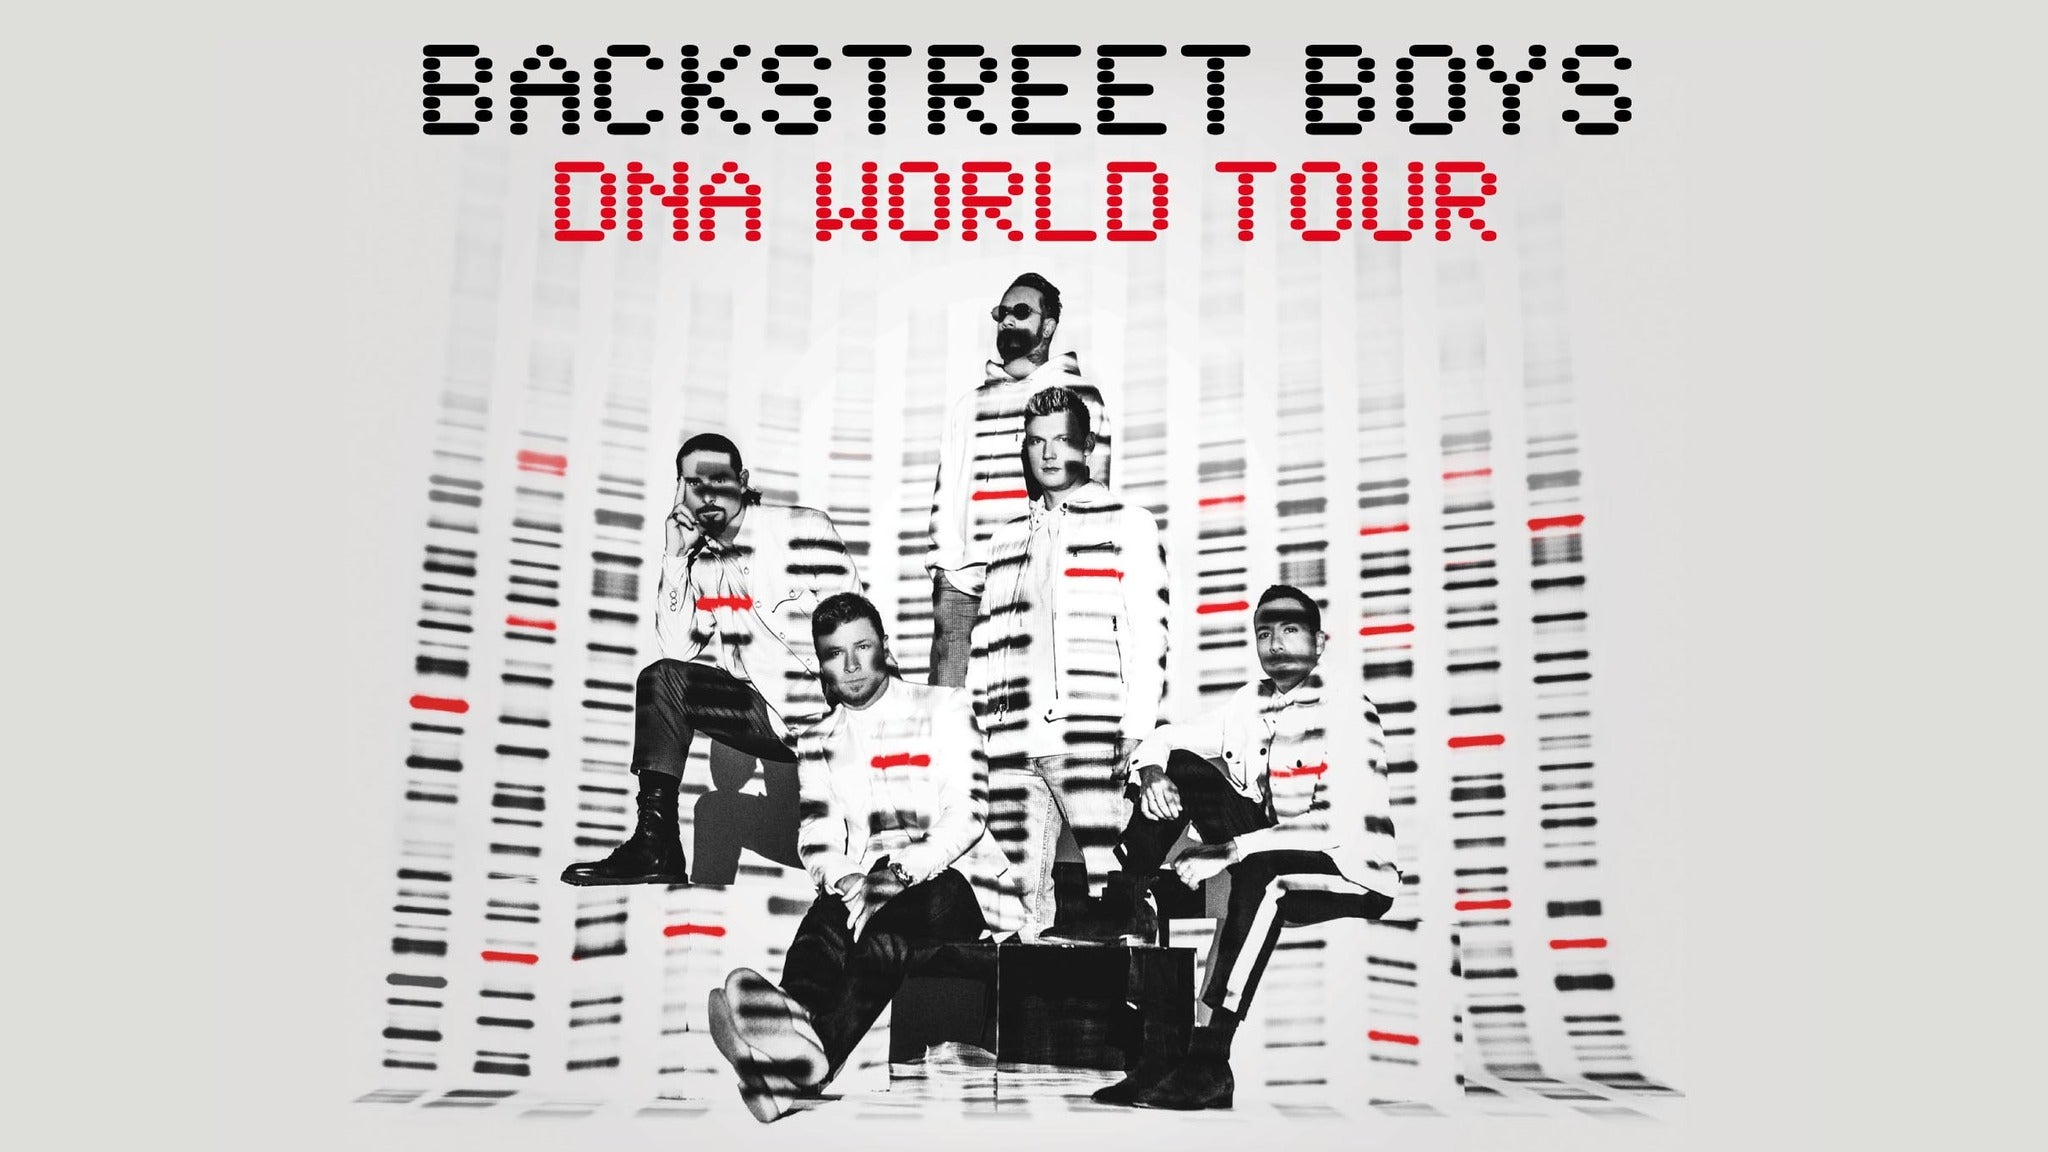 Backstreet Boys: DNA World Tour at Ameris Bank Amphitheatre